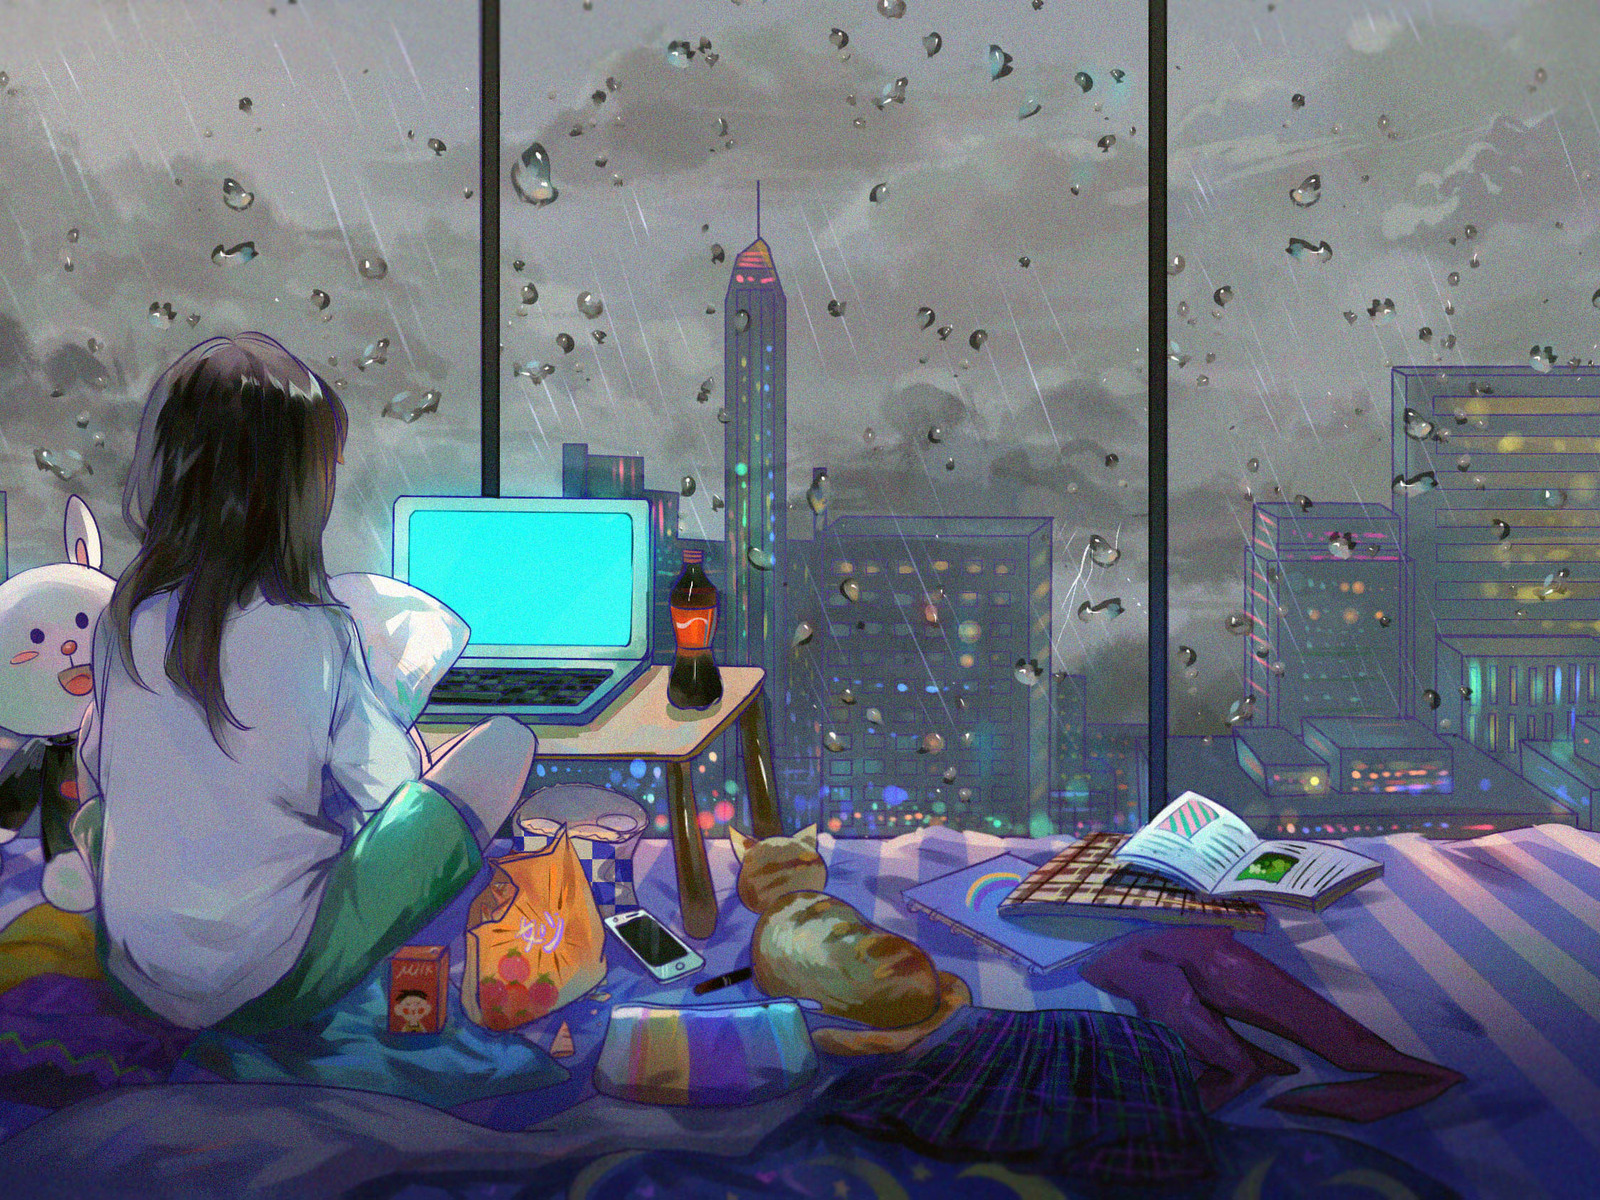 anime-girl-room-city-cat-kk-1600x1200.jpg